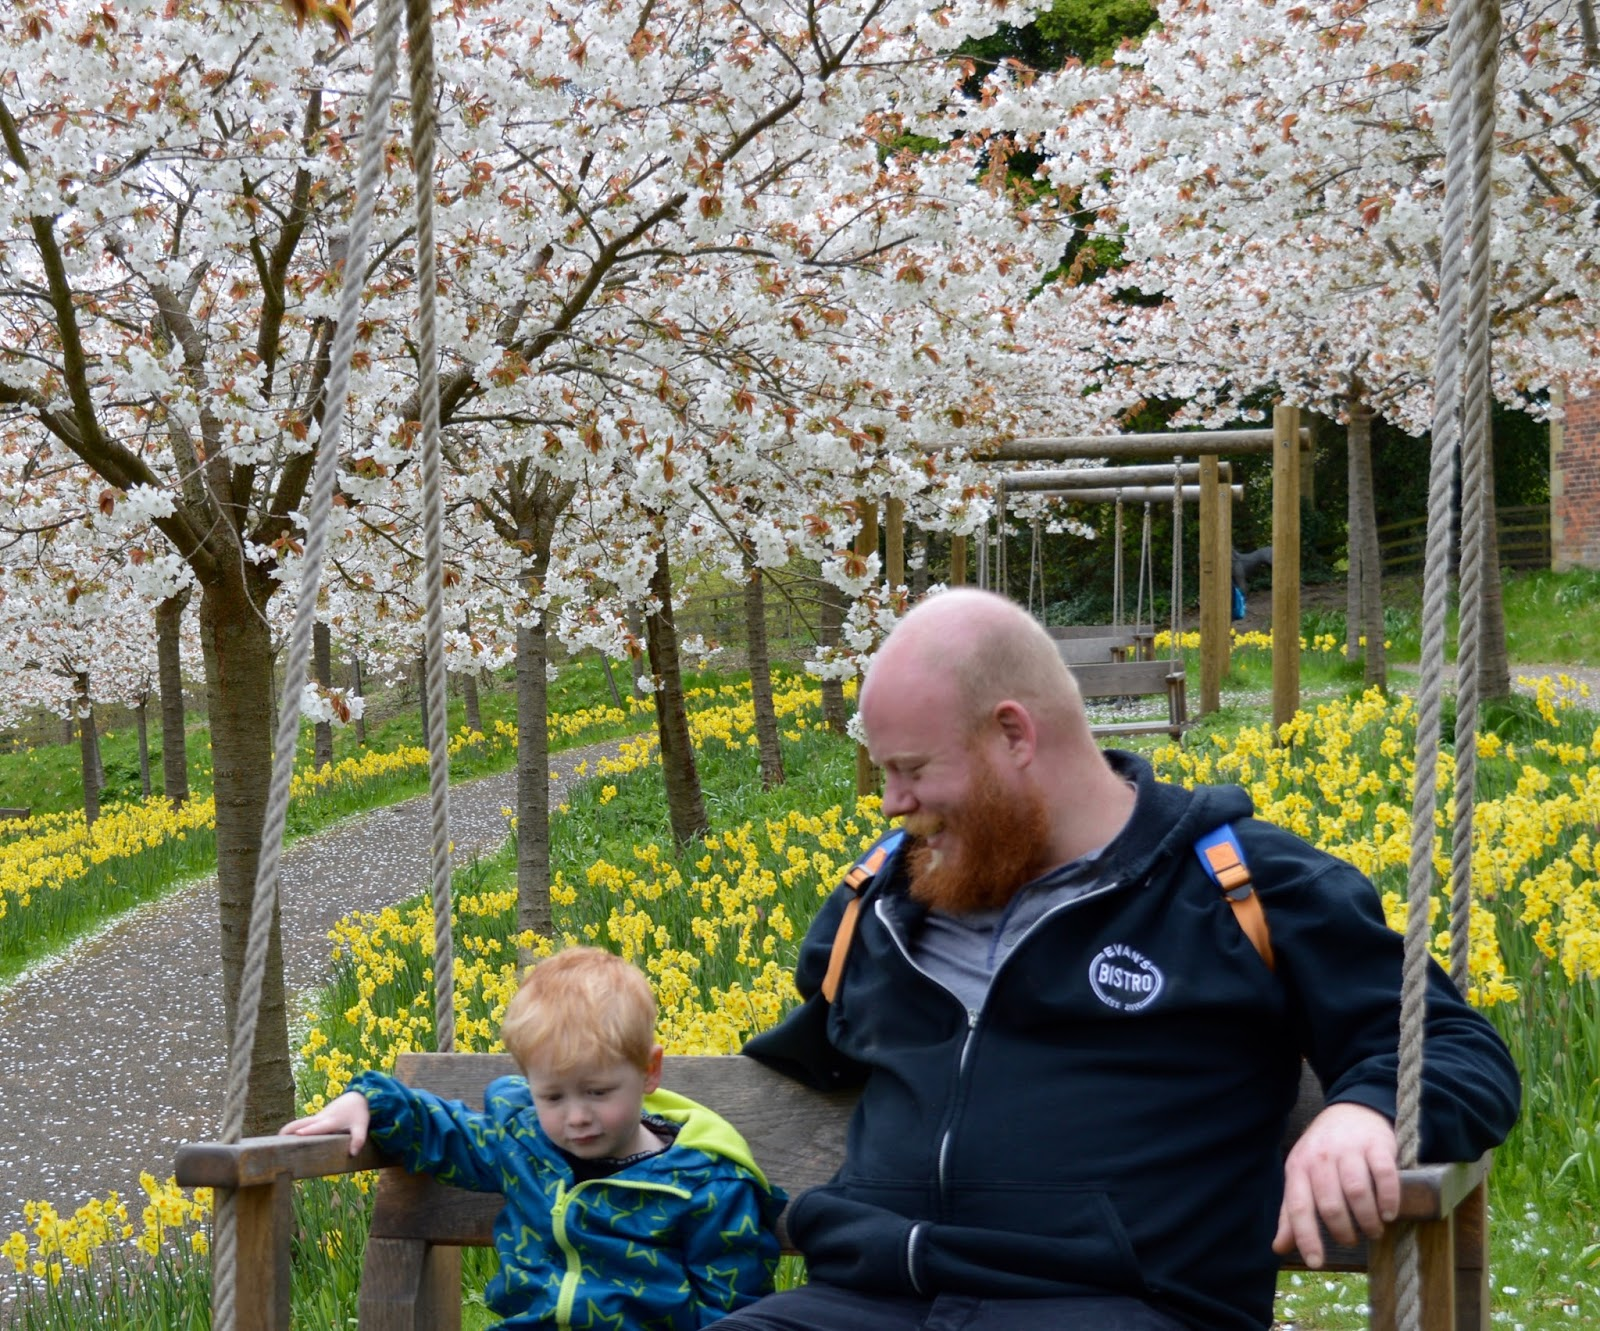 The Cherry Blossom Orchard at The Alnwick Garden  - kids swing